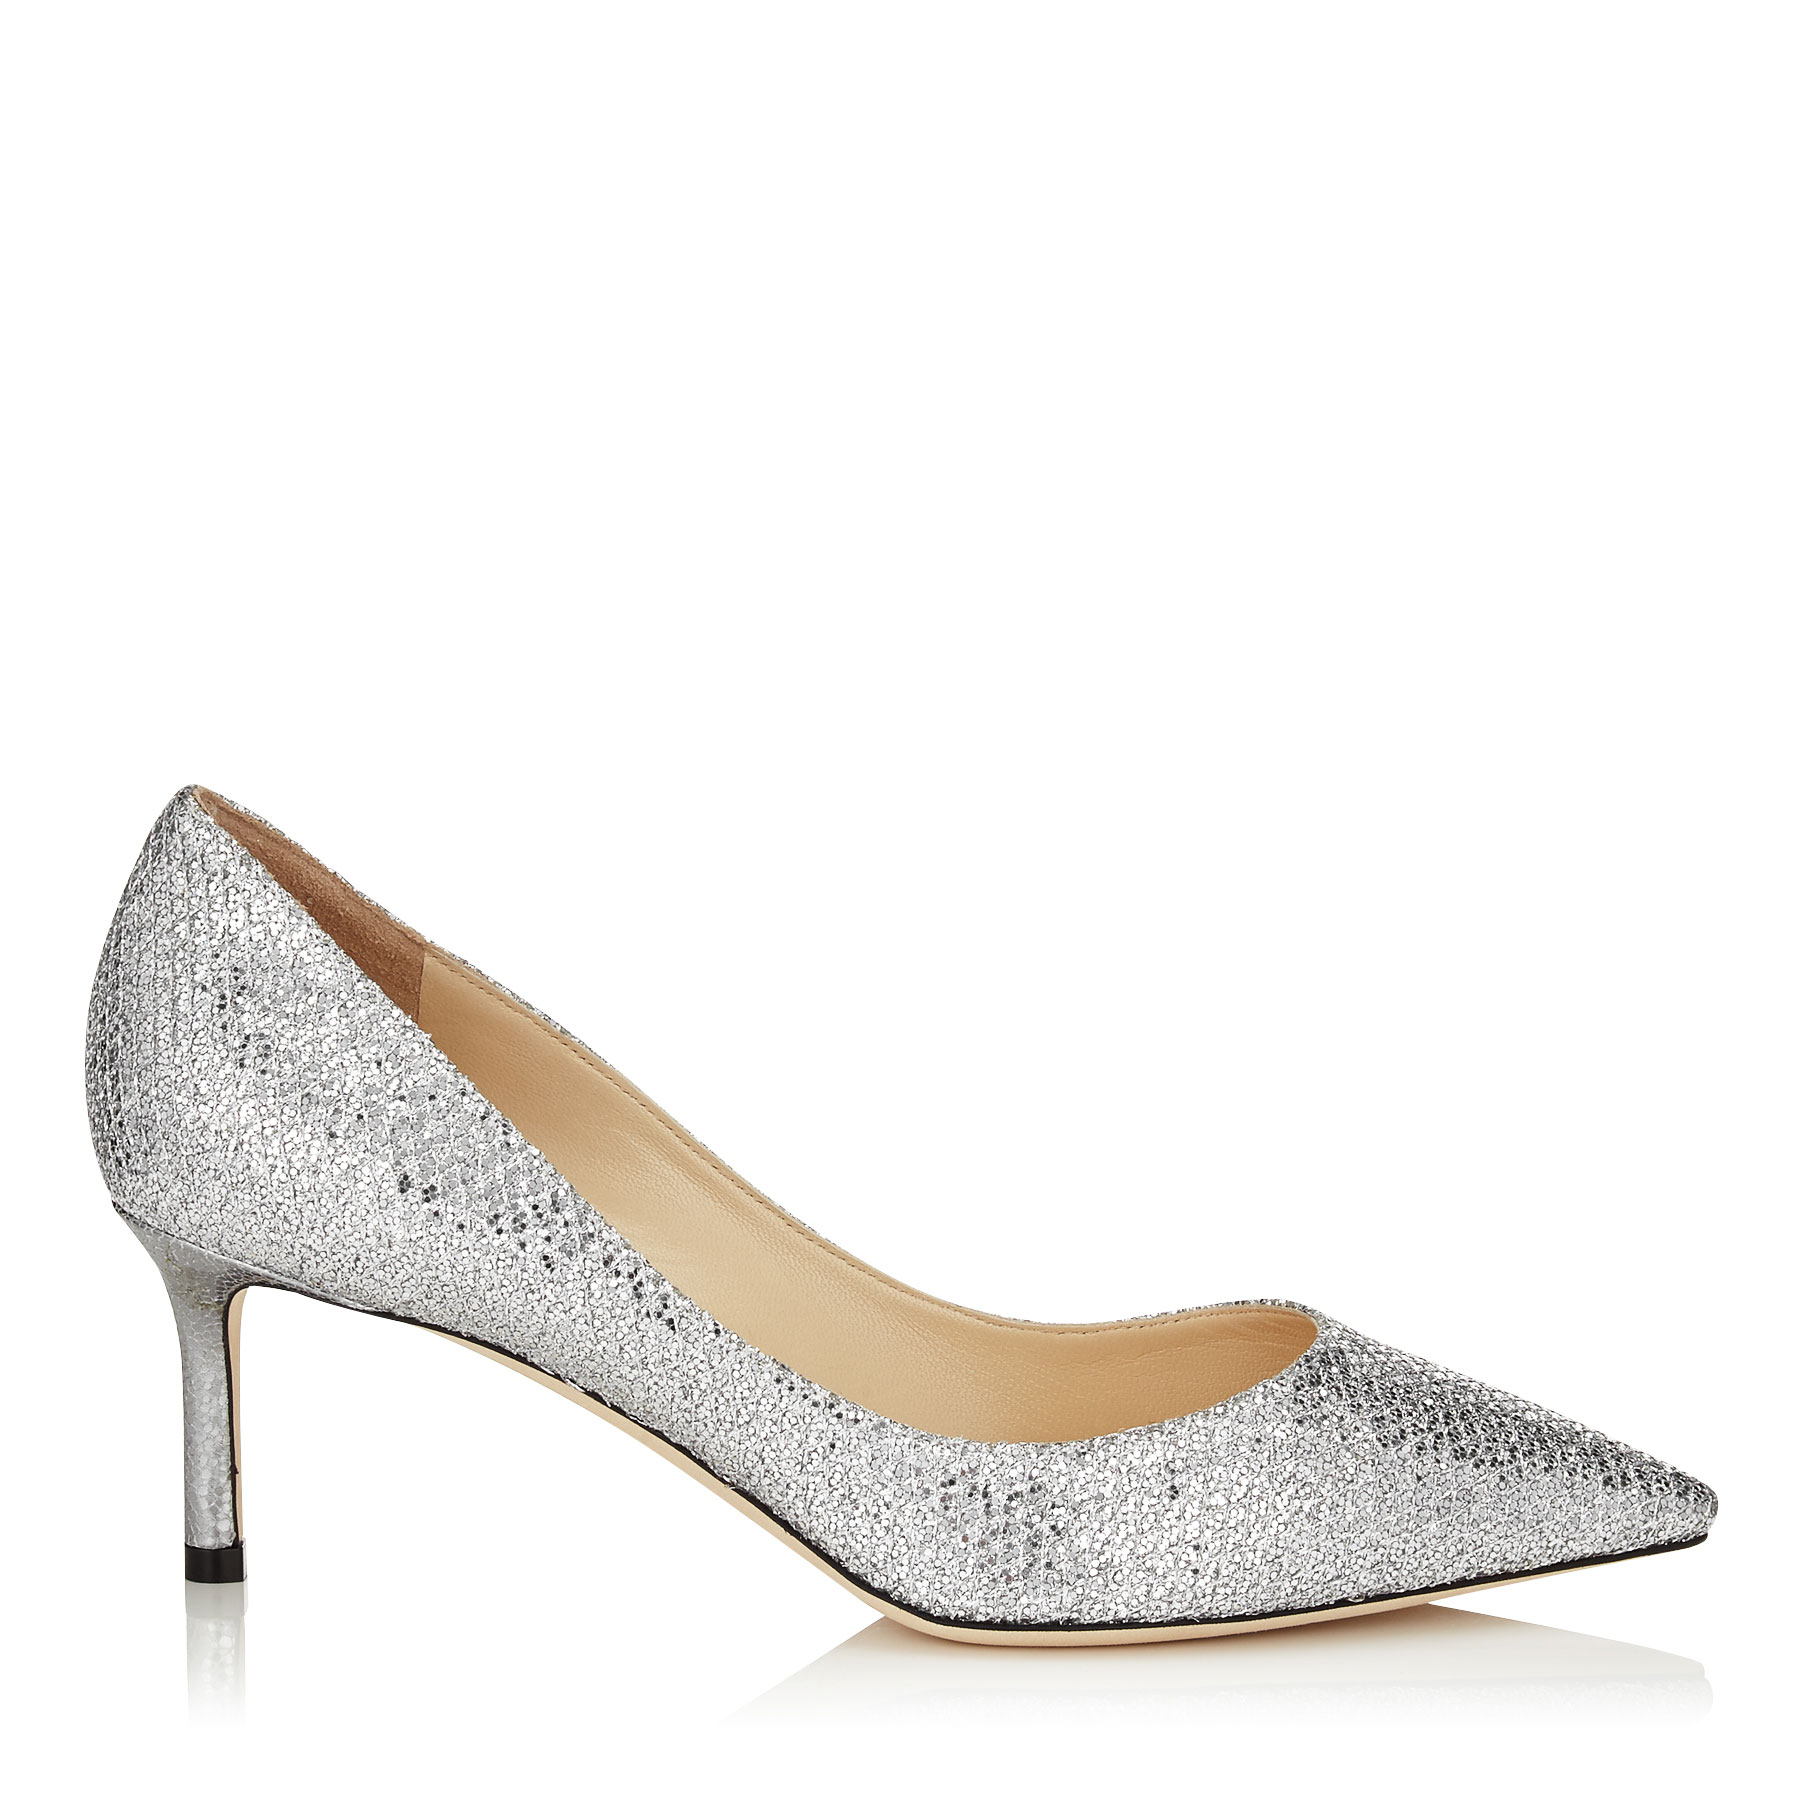 ROMY 60 Silver Glitter Fabric Pointy Toe Pumps by Jimmy Choo